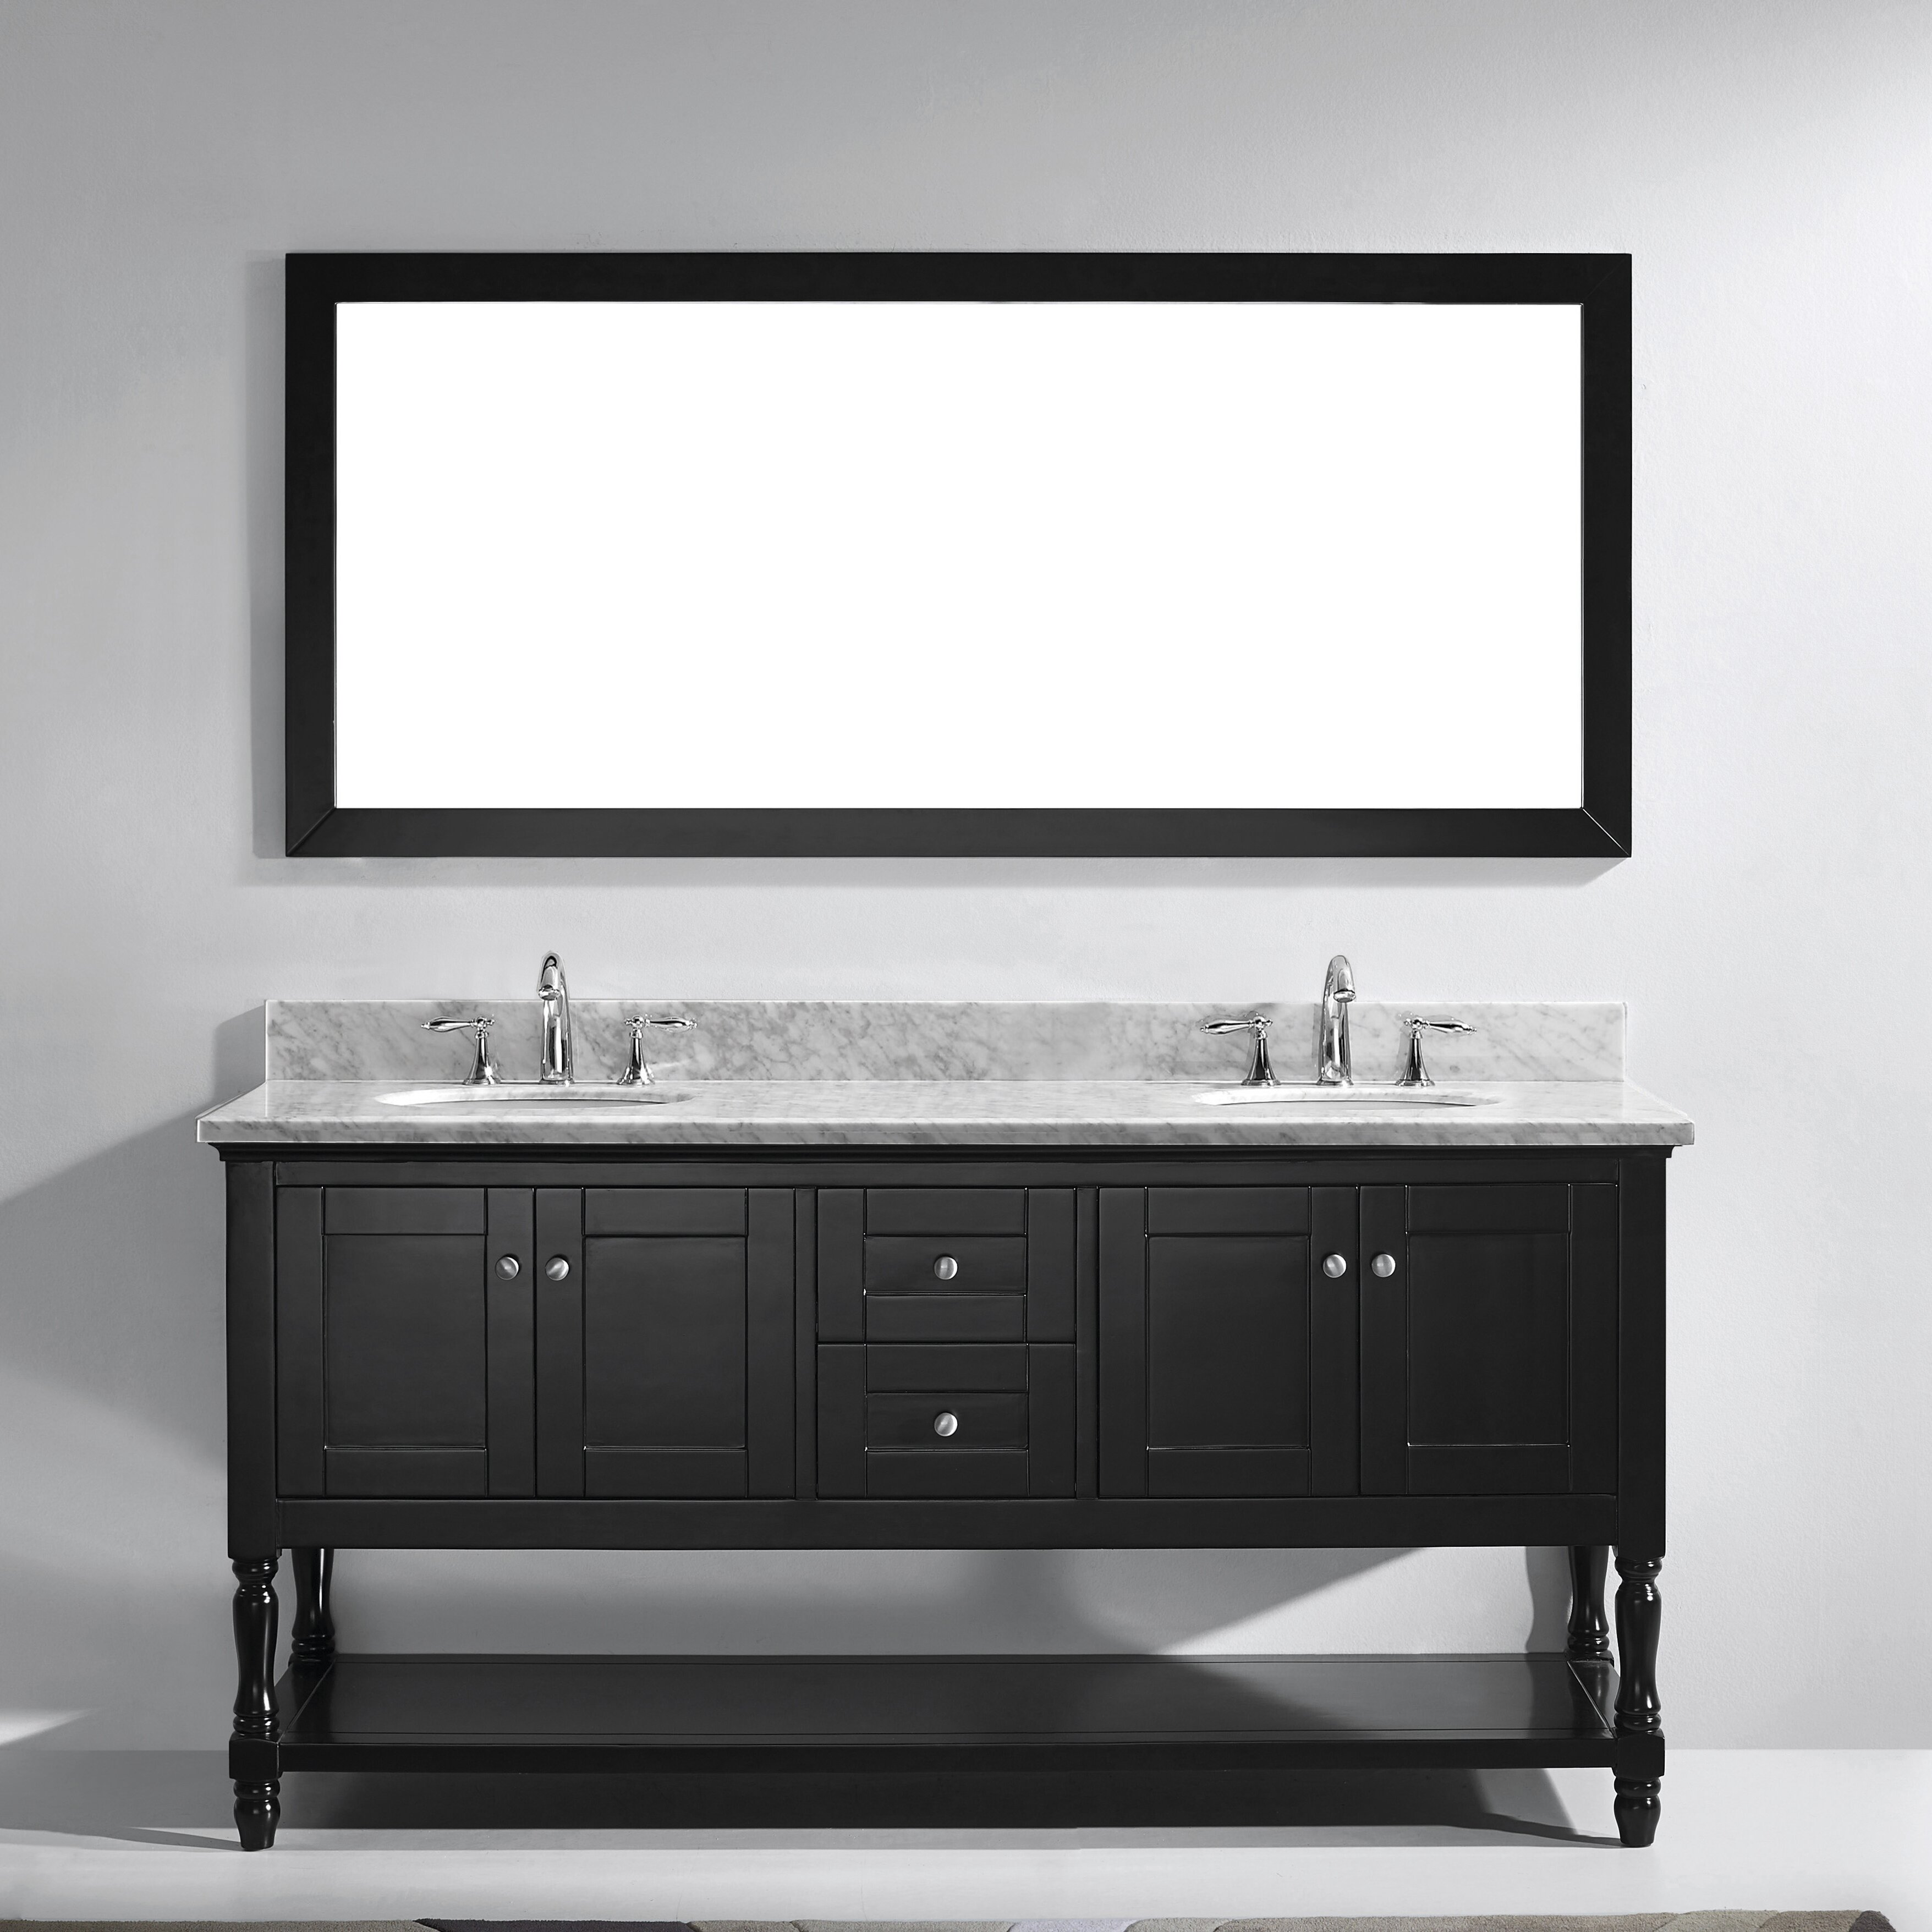 Virtu Julianna 72 8 Double Bathroom Vanity Set With Carrara White Top And Mirror Reviews